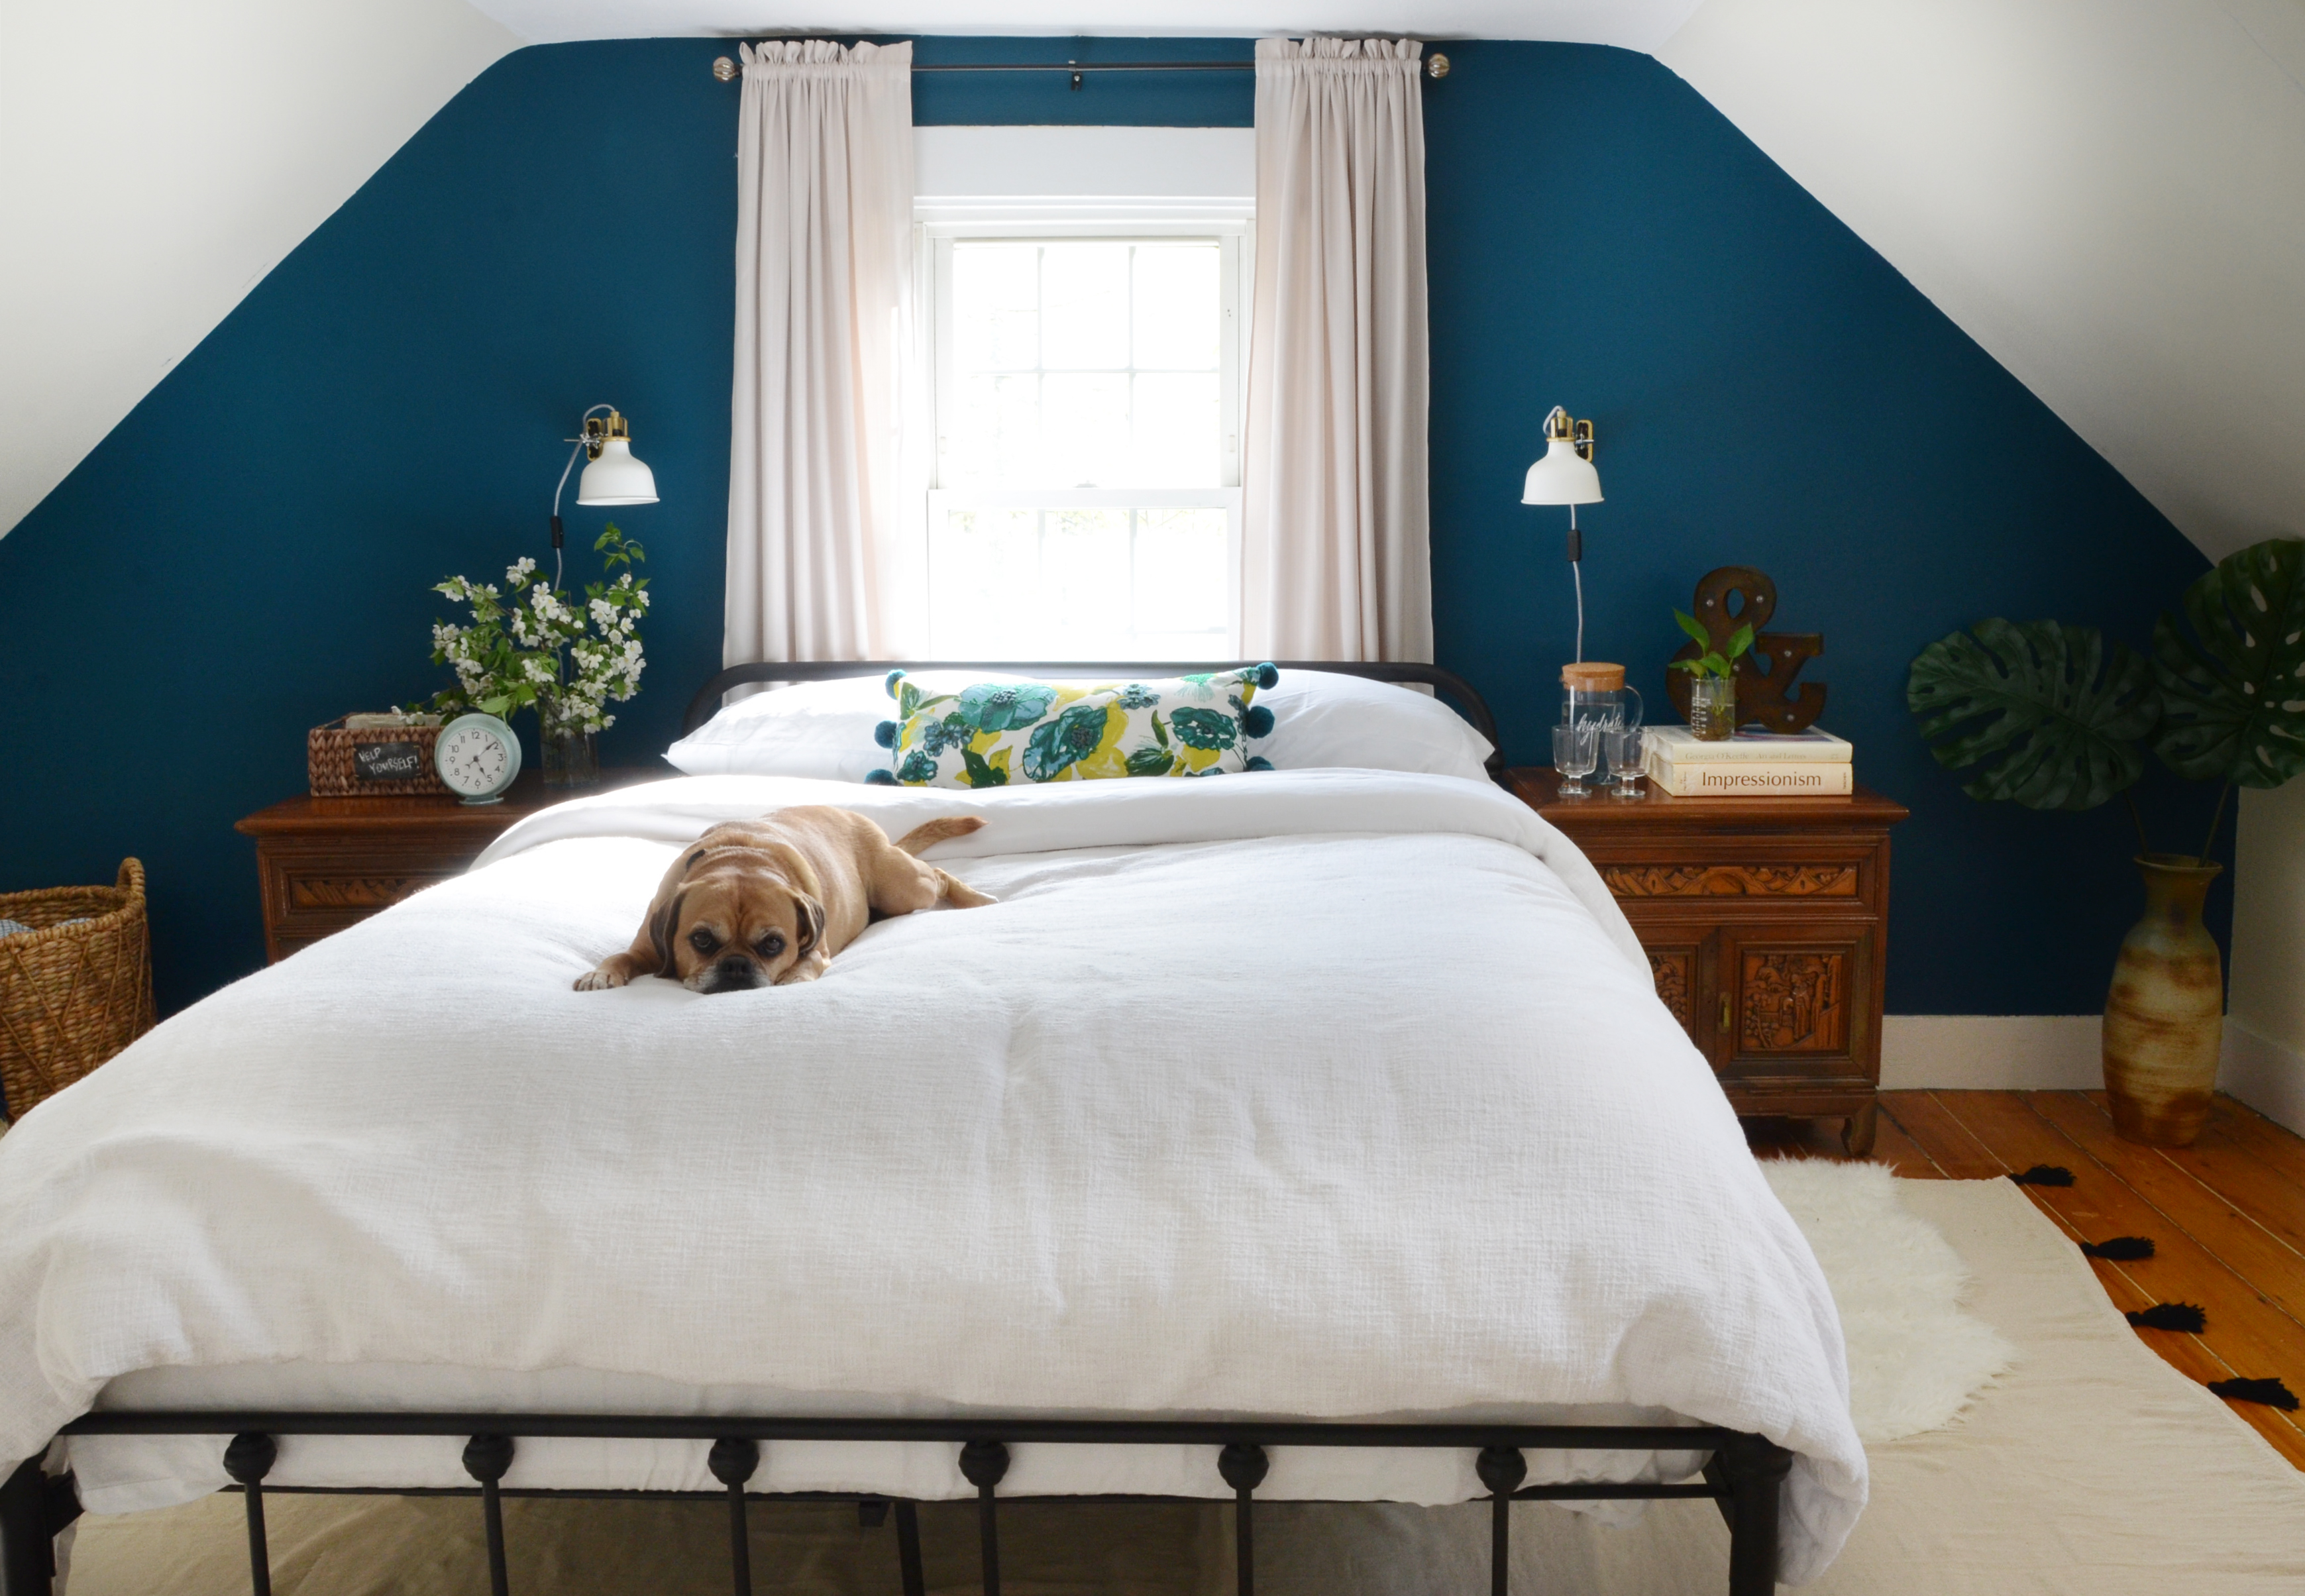 One Room Challenge Turquoise Blue and White